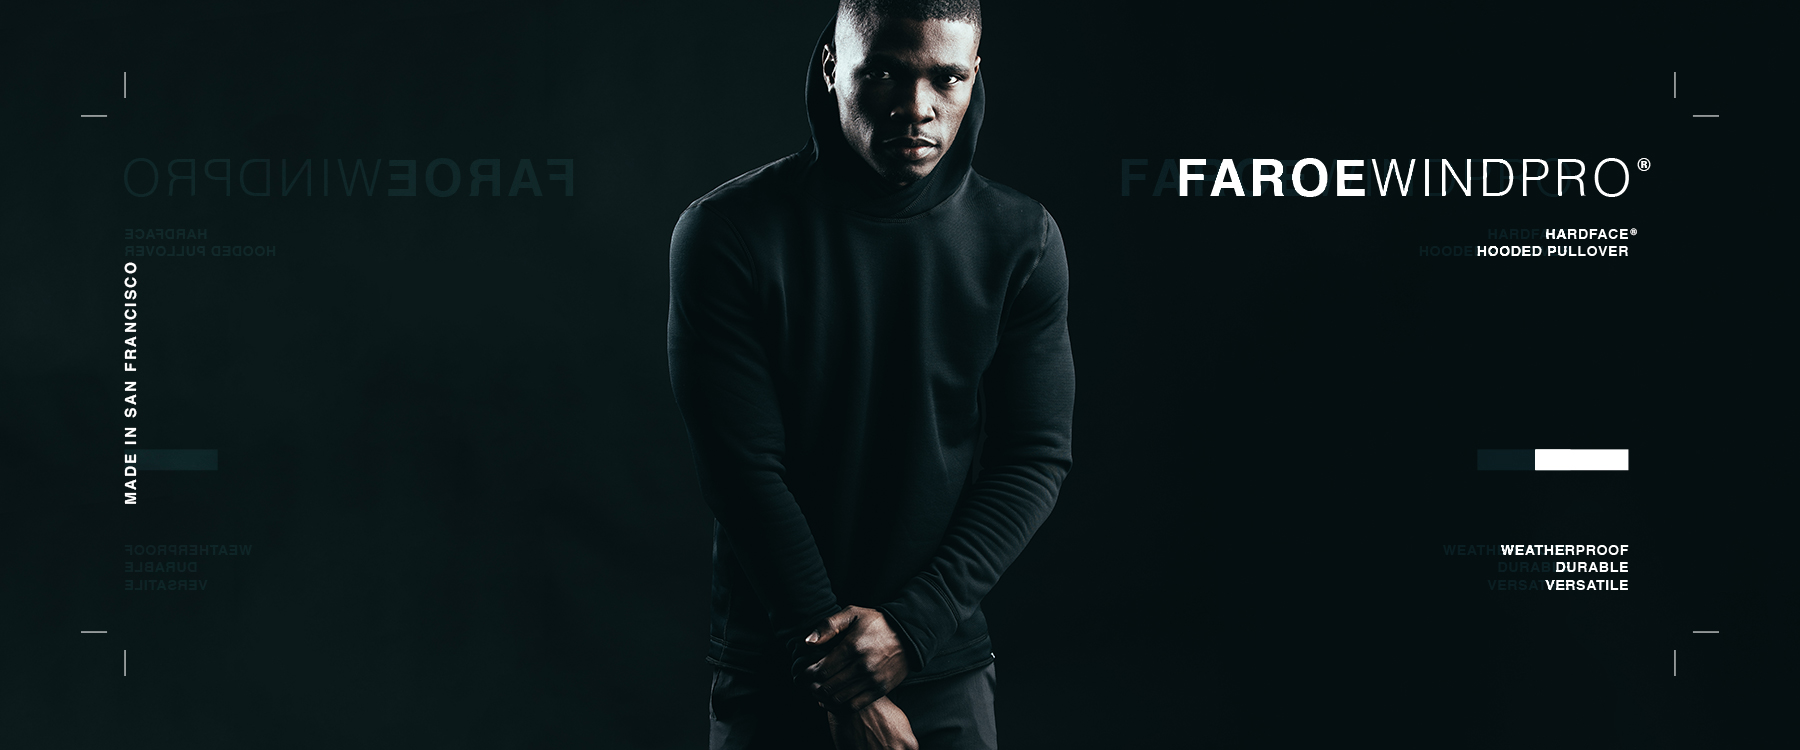 The Faroe : Wind Pro Hardface Hooded Pullover